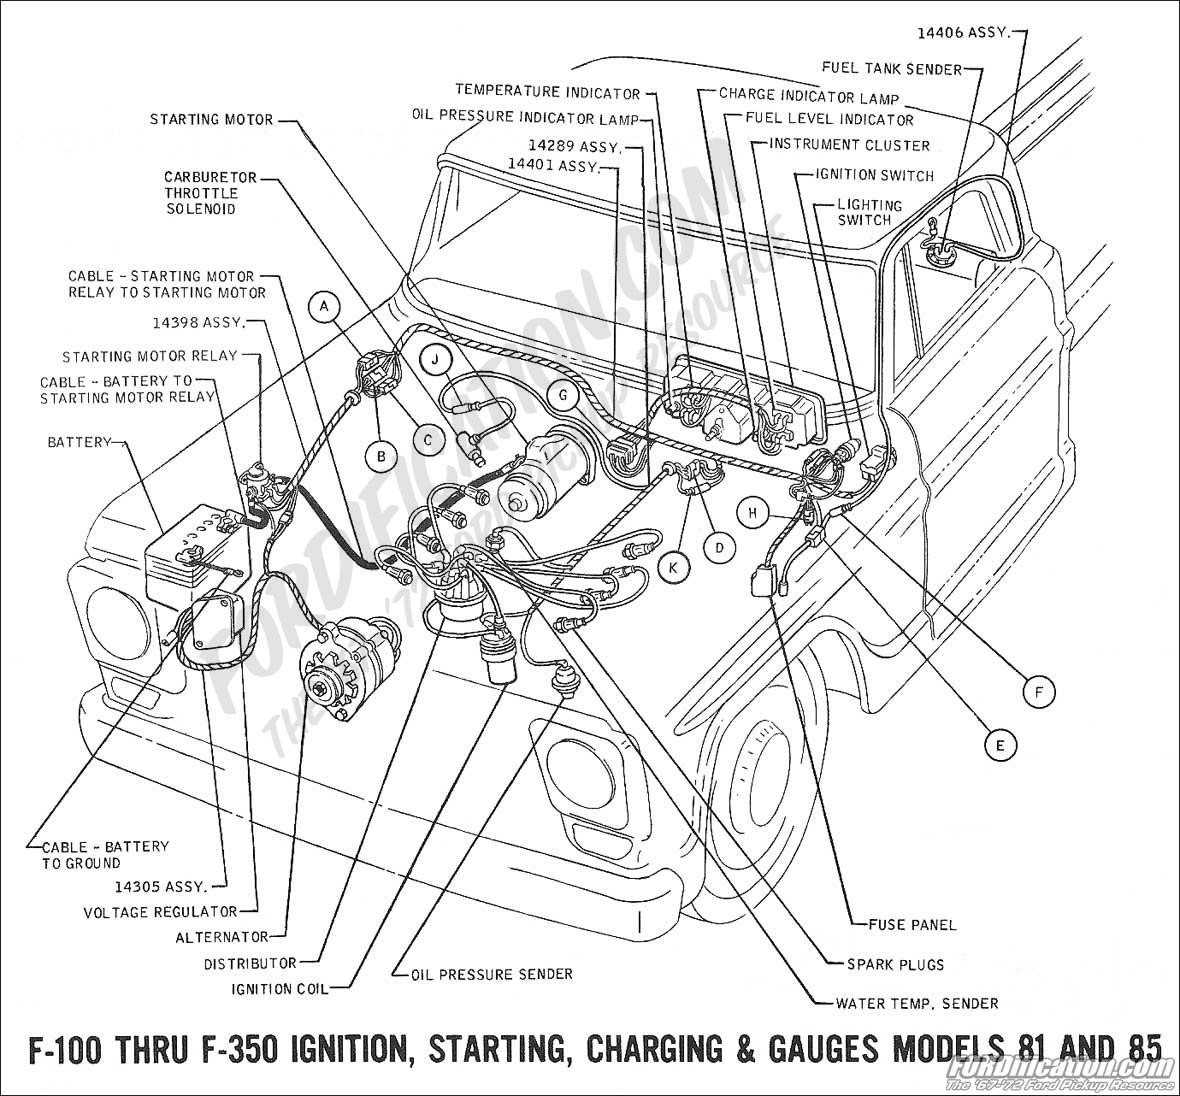 wiring 1969charging wiring diagram for 1969 ford f100 readingrat net ford truck wiring diagrams free at webbmarketing.co